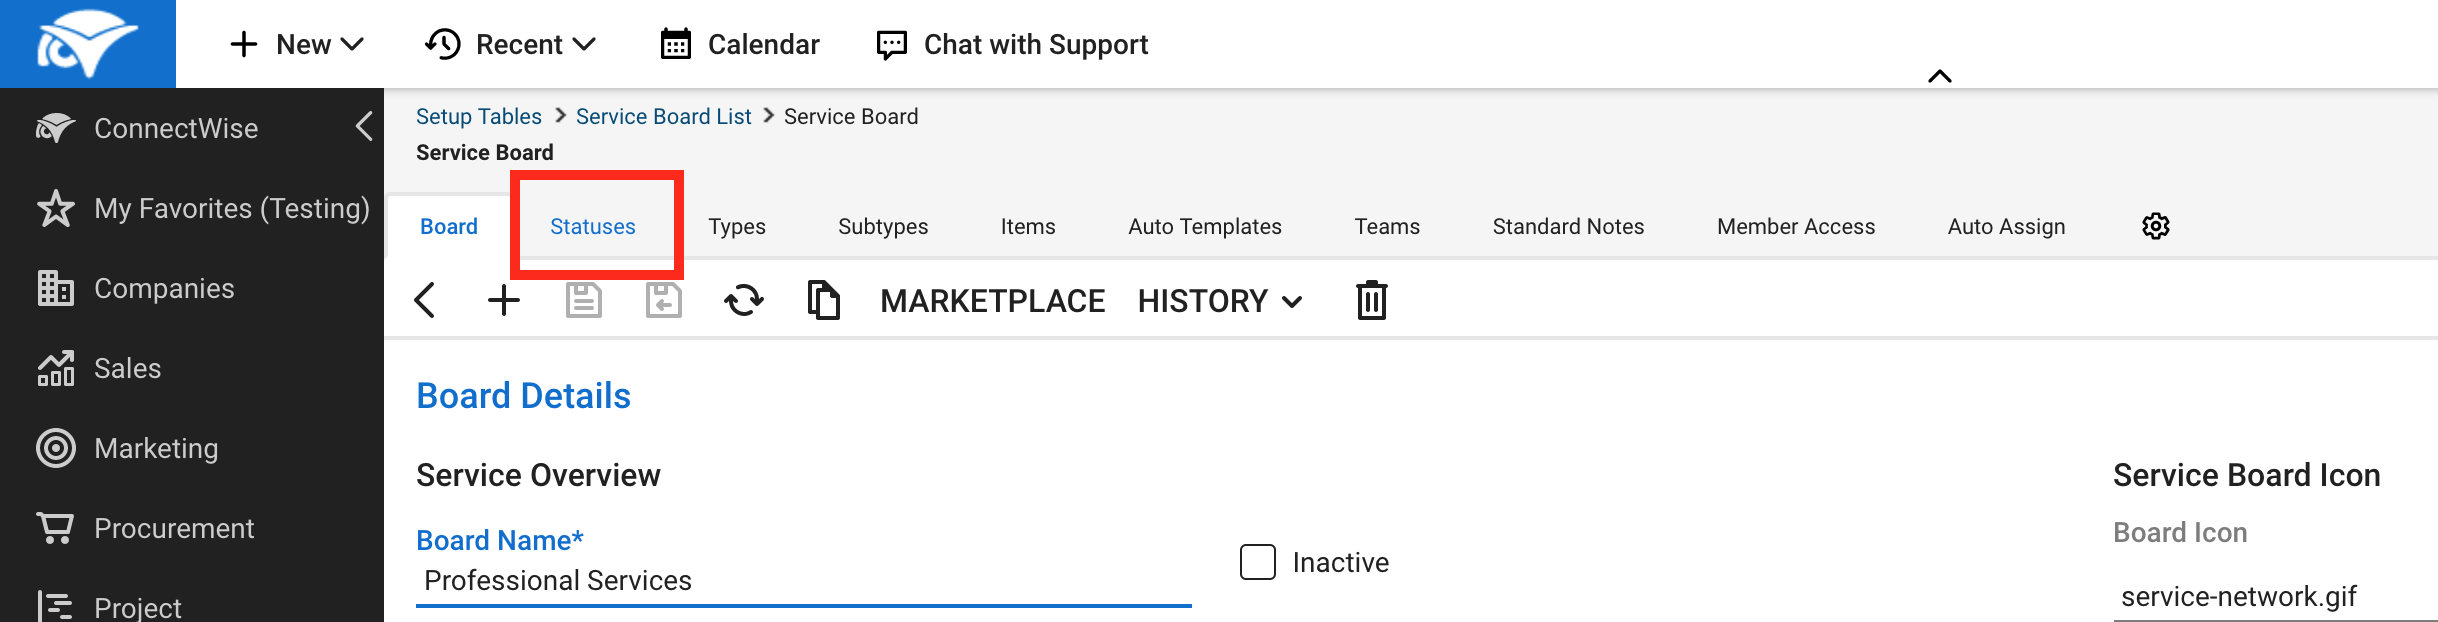 ConnectWise Manage Integration